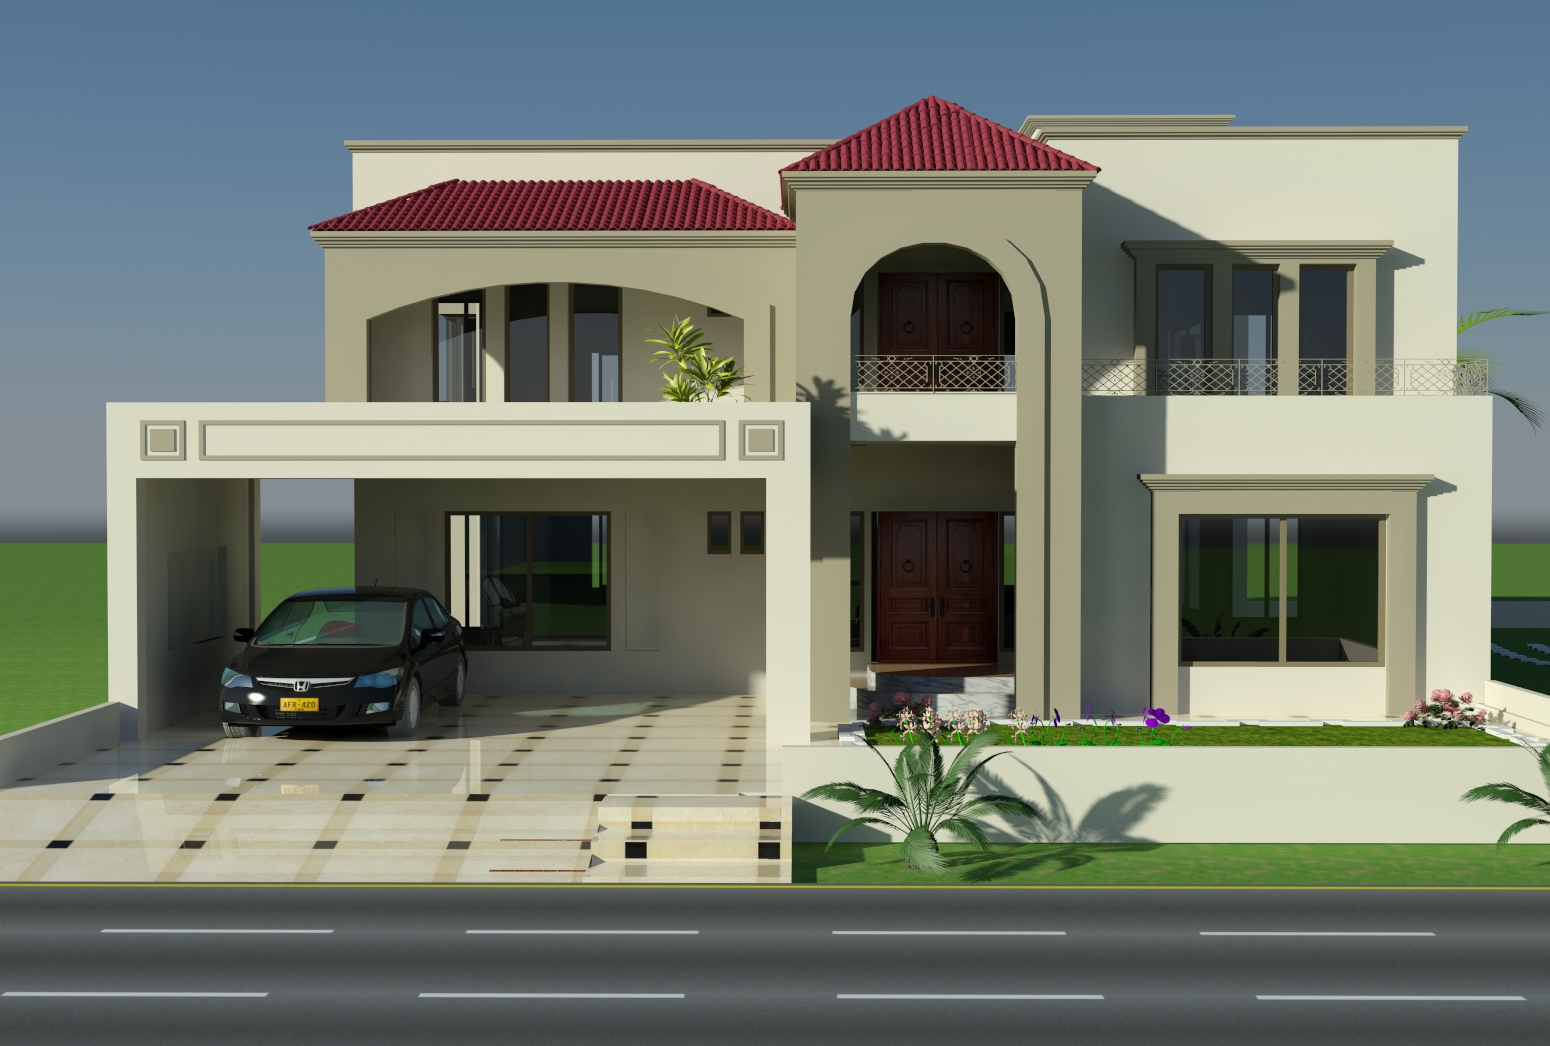 Home Design In Pakistan home design pictures in pakistan Kanal Plot House Design Europen Style In Bahria Town Lahore Pakistan